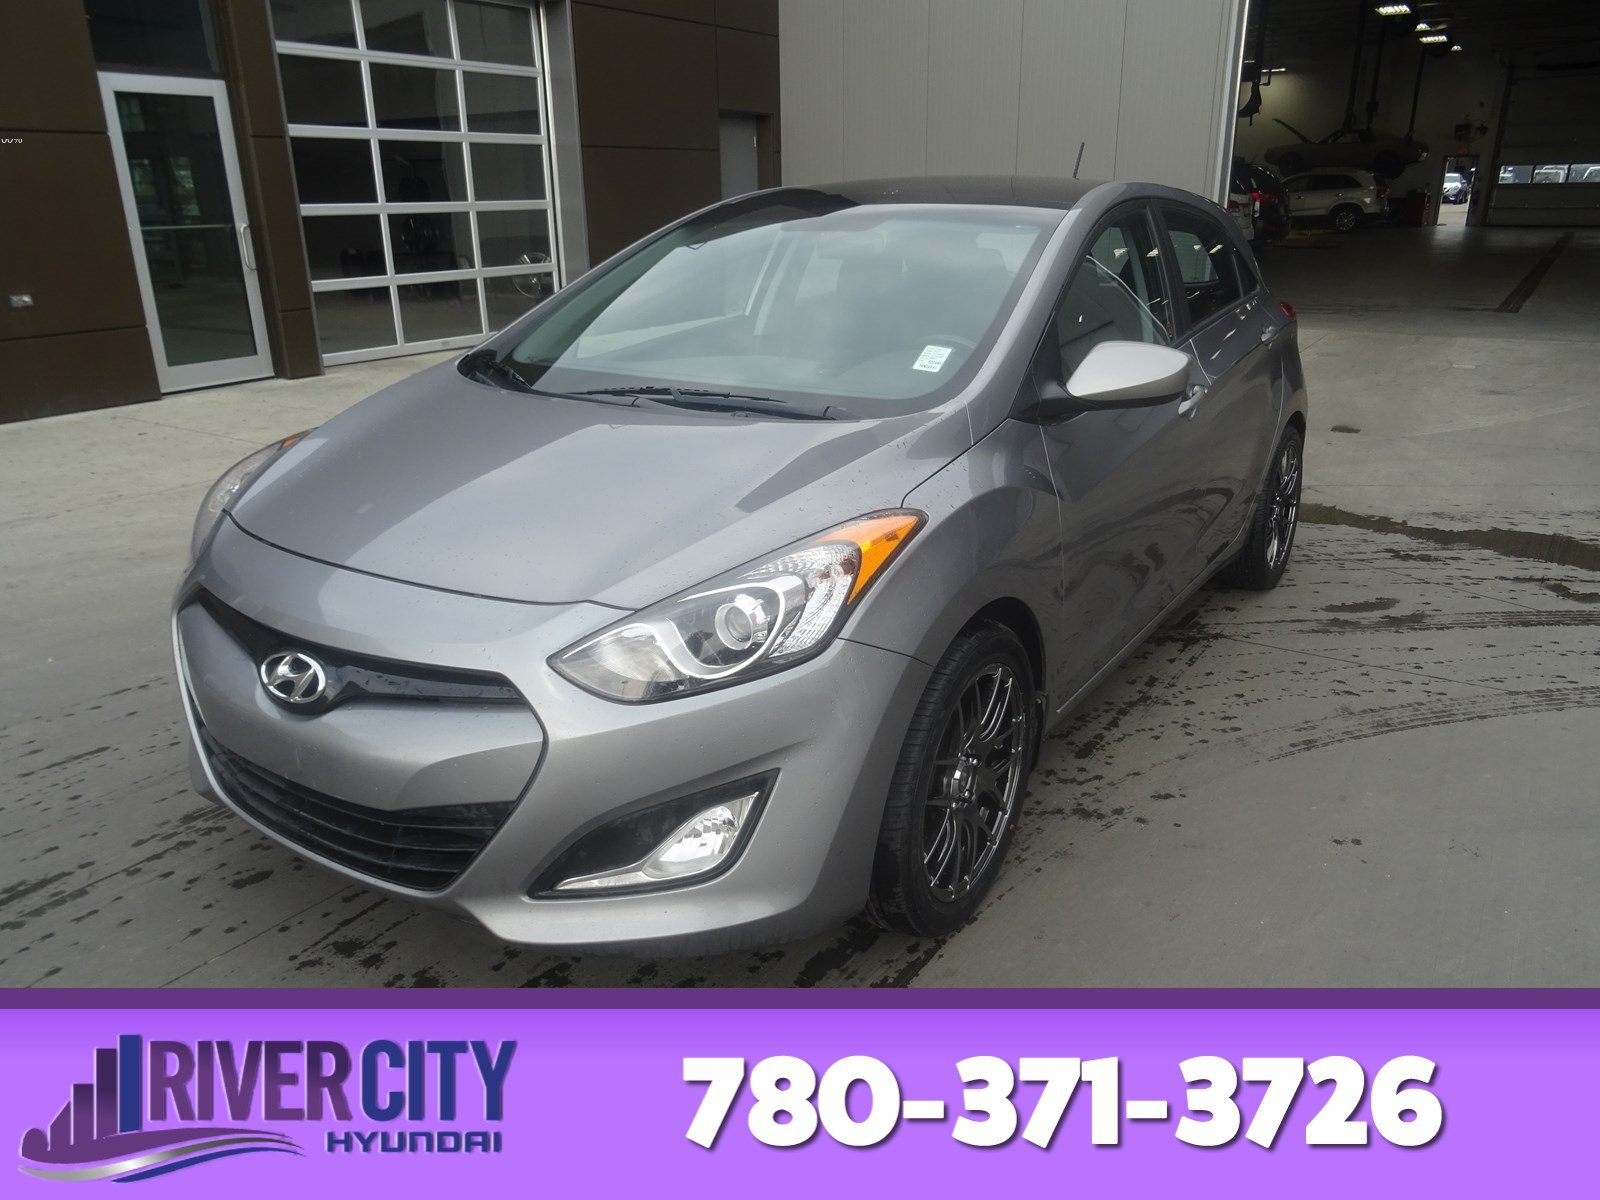 Certified Pre Owned 2013 Hyundai Elantra GT GLS Heated Seats, Panoramic  Roof, Bluetooth, A/C,